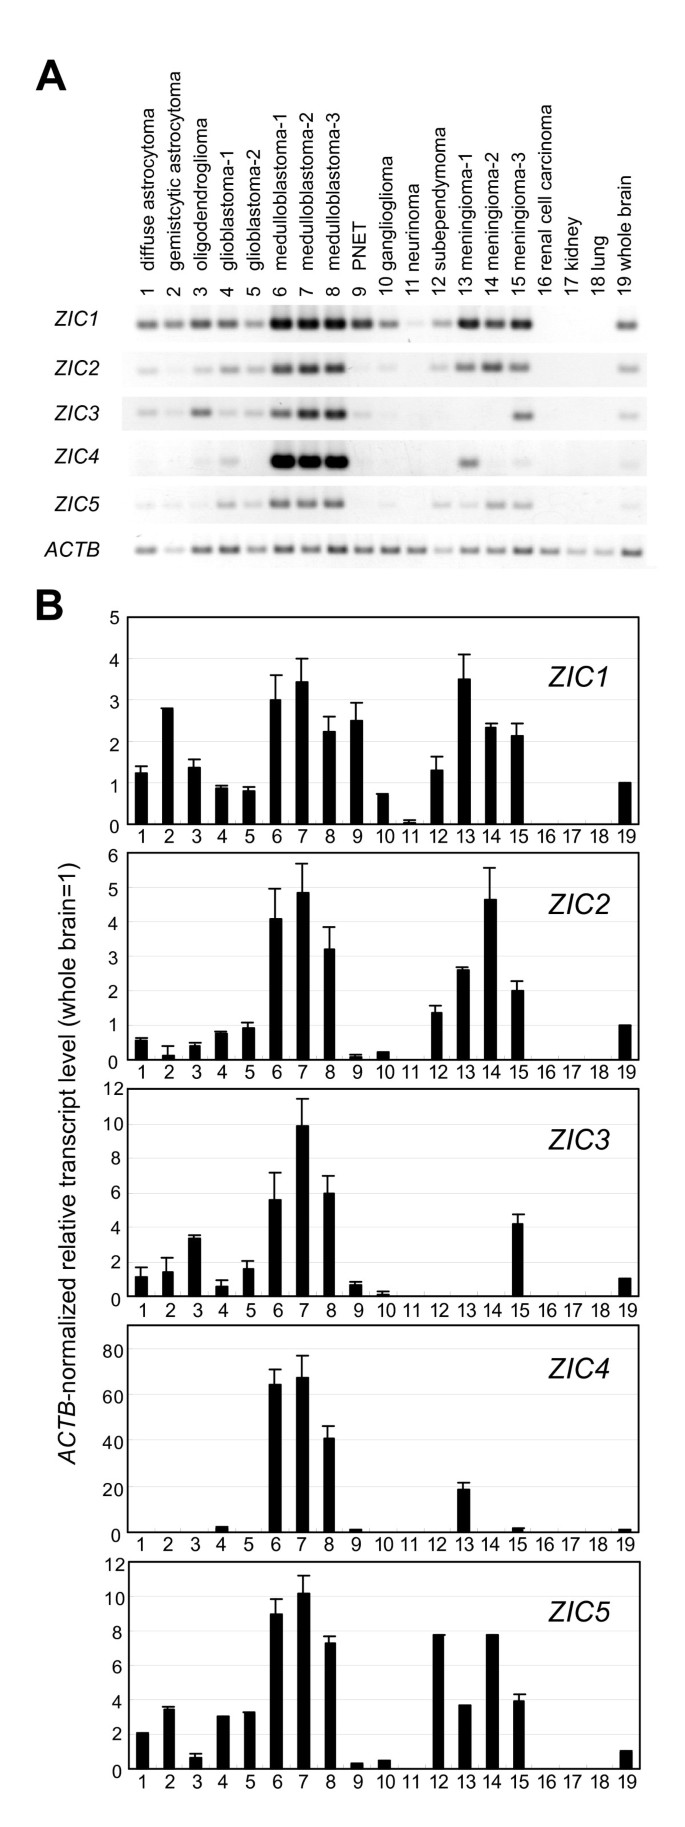 Expression of ZIC family genes in meningiomas and other brain tumors